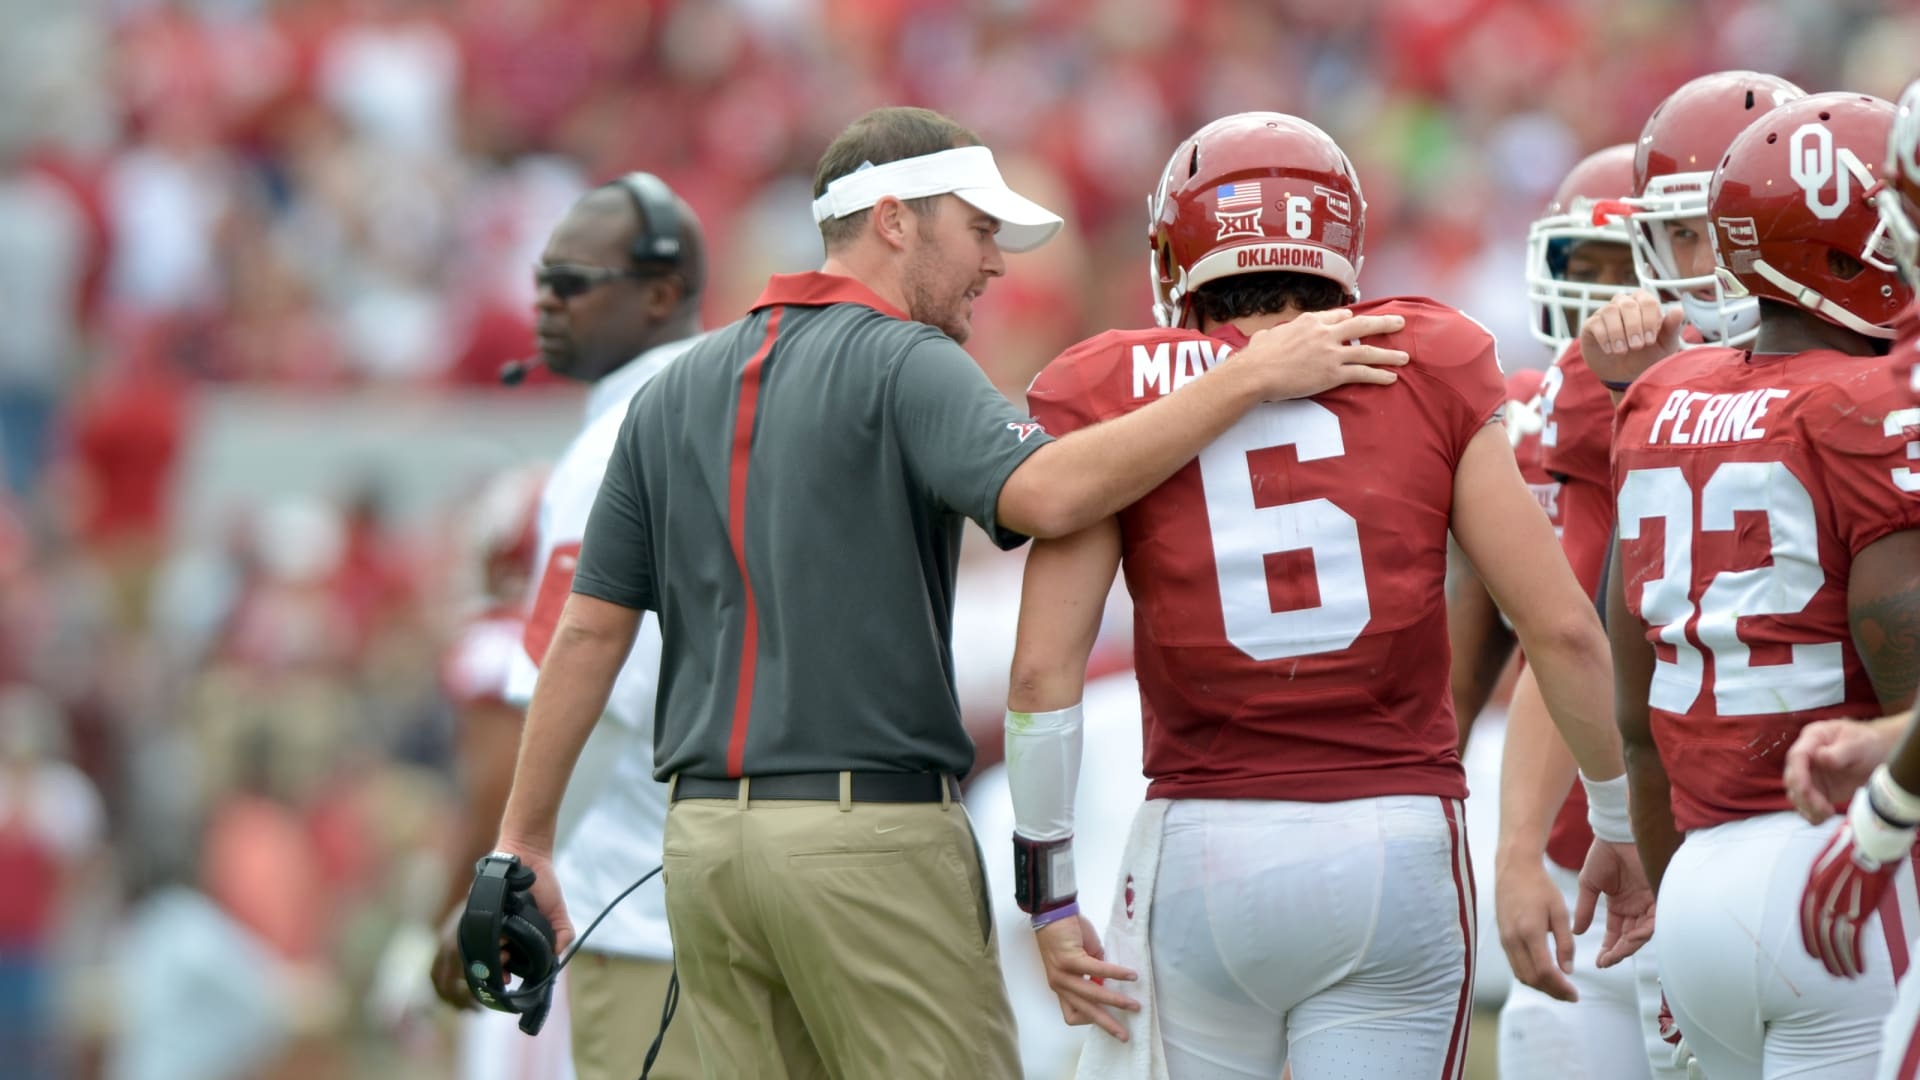 Cleveland Browns News: Lincoln Riley expects Baker Mayfield to rebound